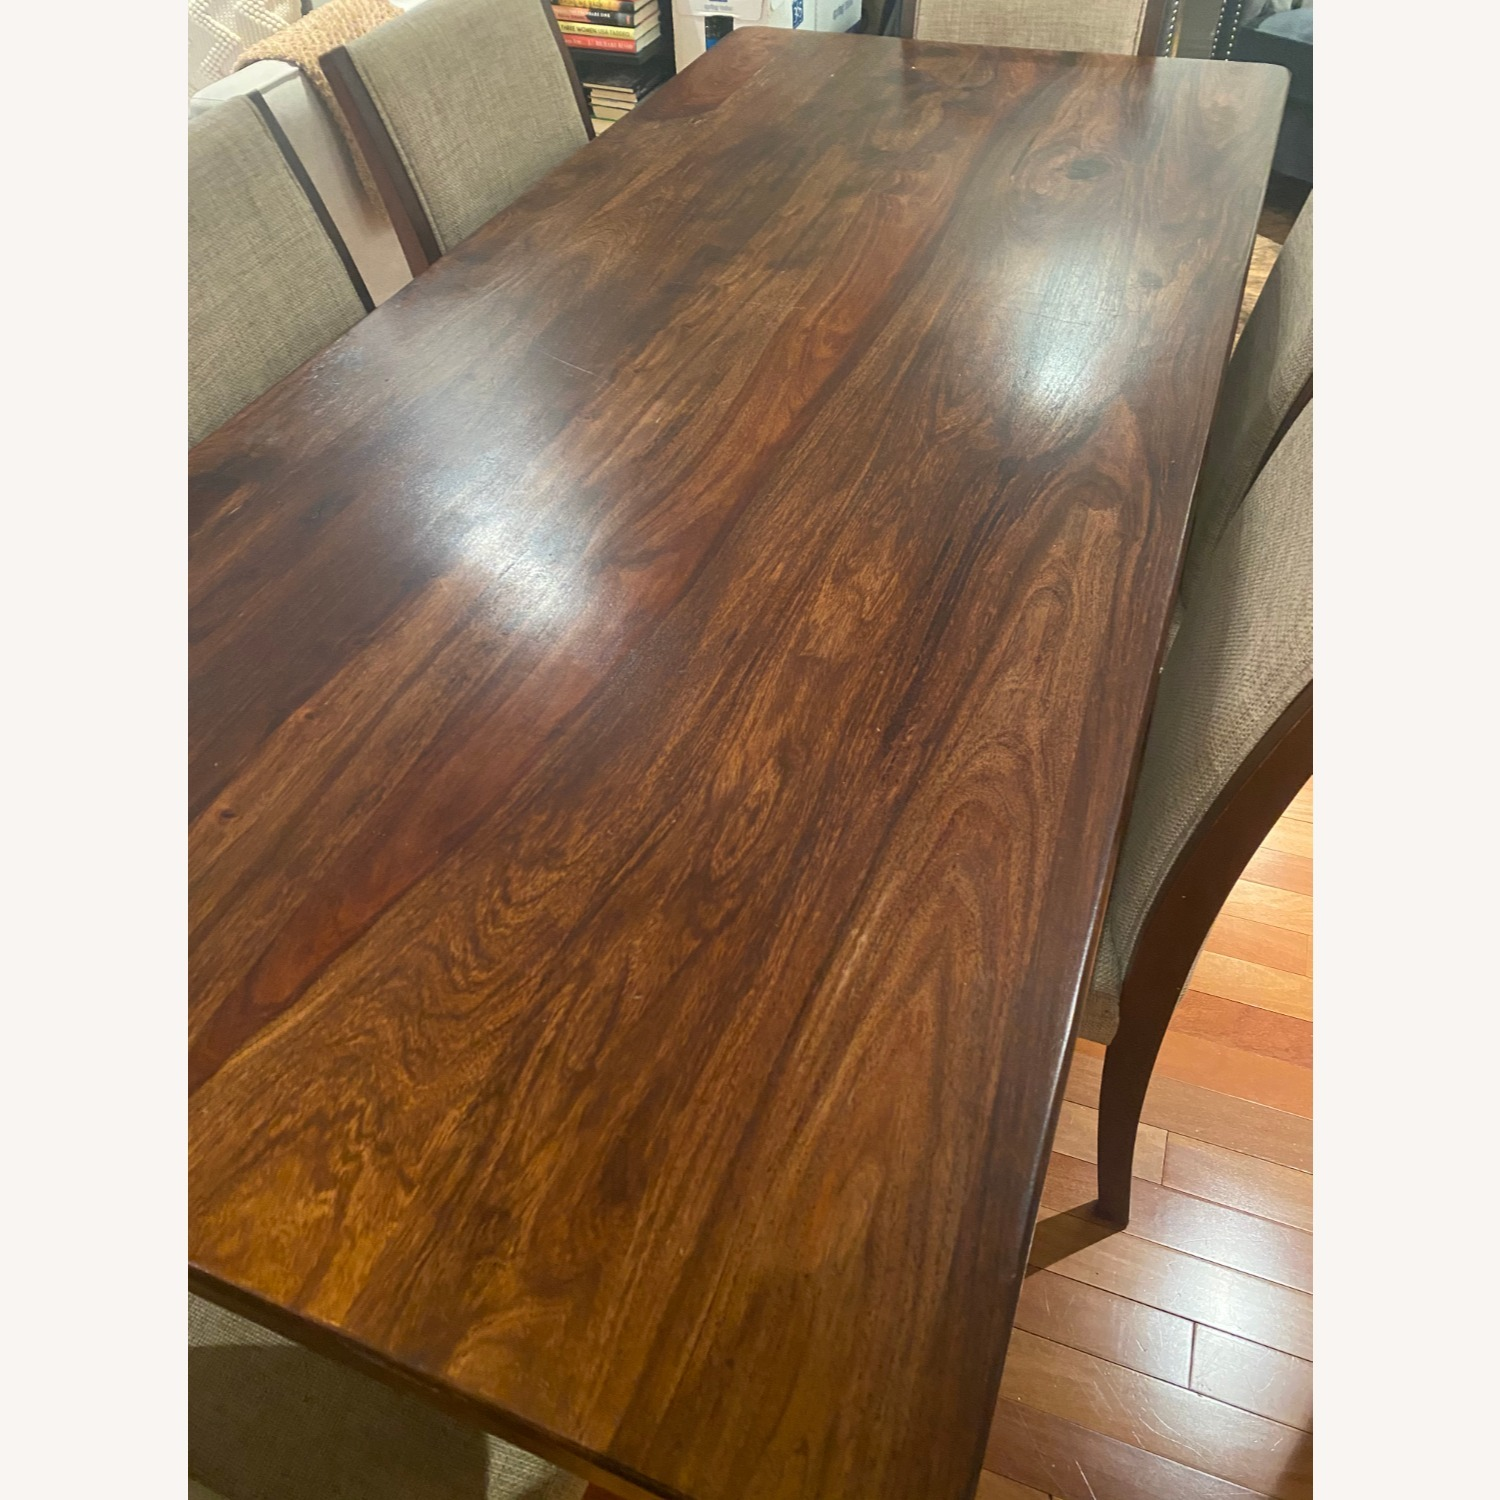 Pier 1 Imports Dark Wood Dining Table, Seats 6 - image-1